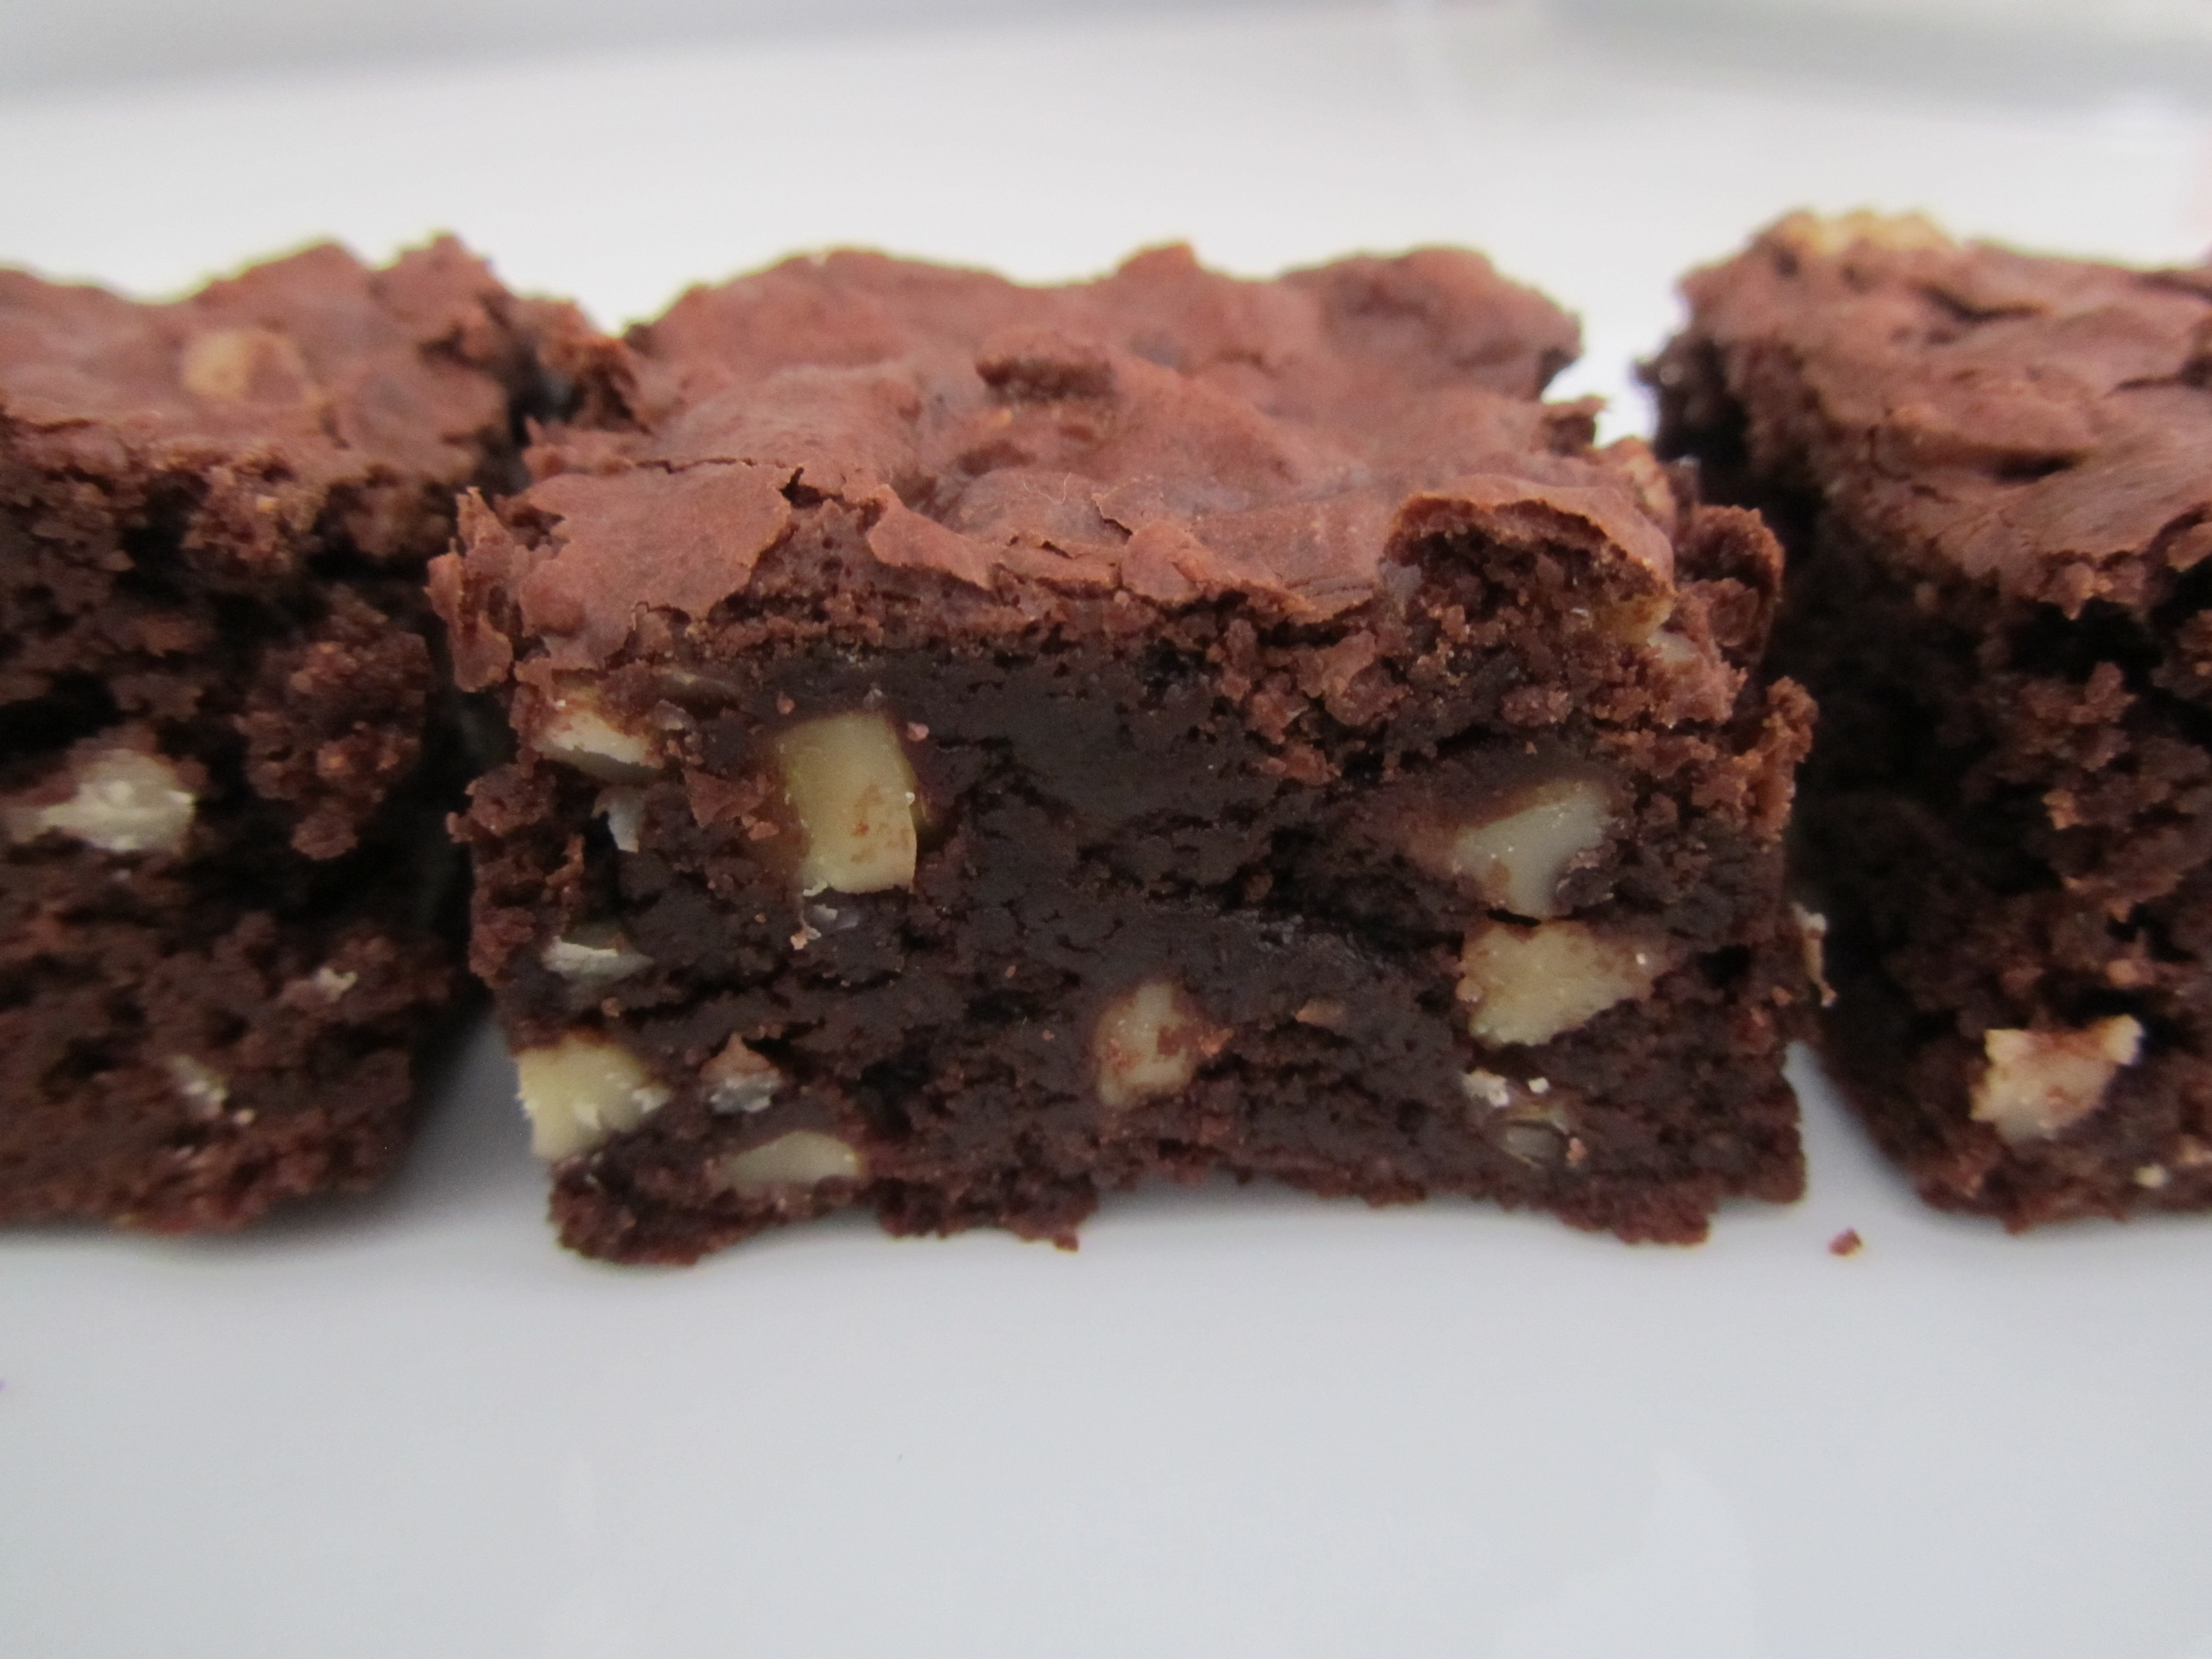 Cocoa Brownies with Browned Butter and Walnuts (Gluten-Free Version)